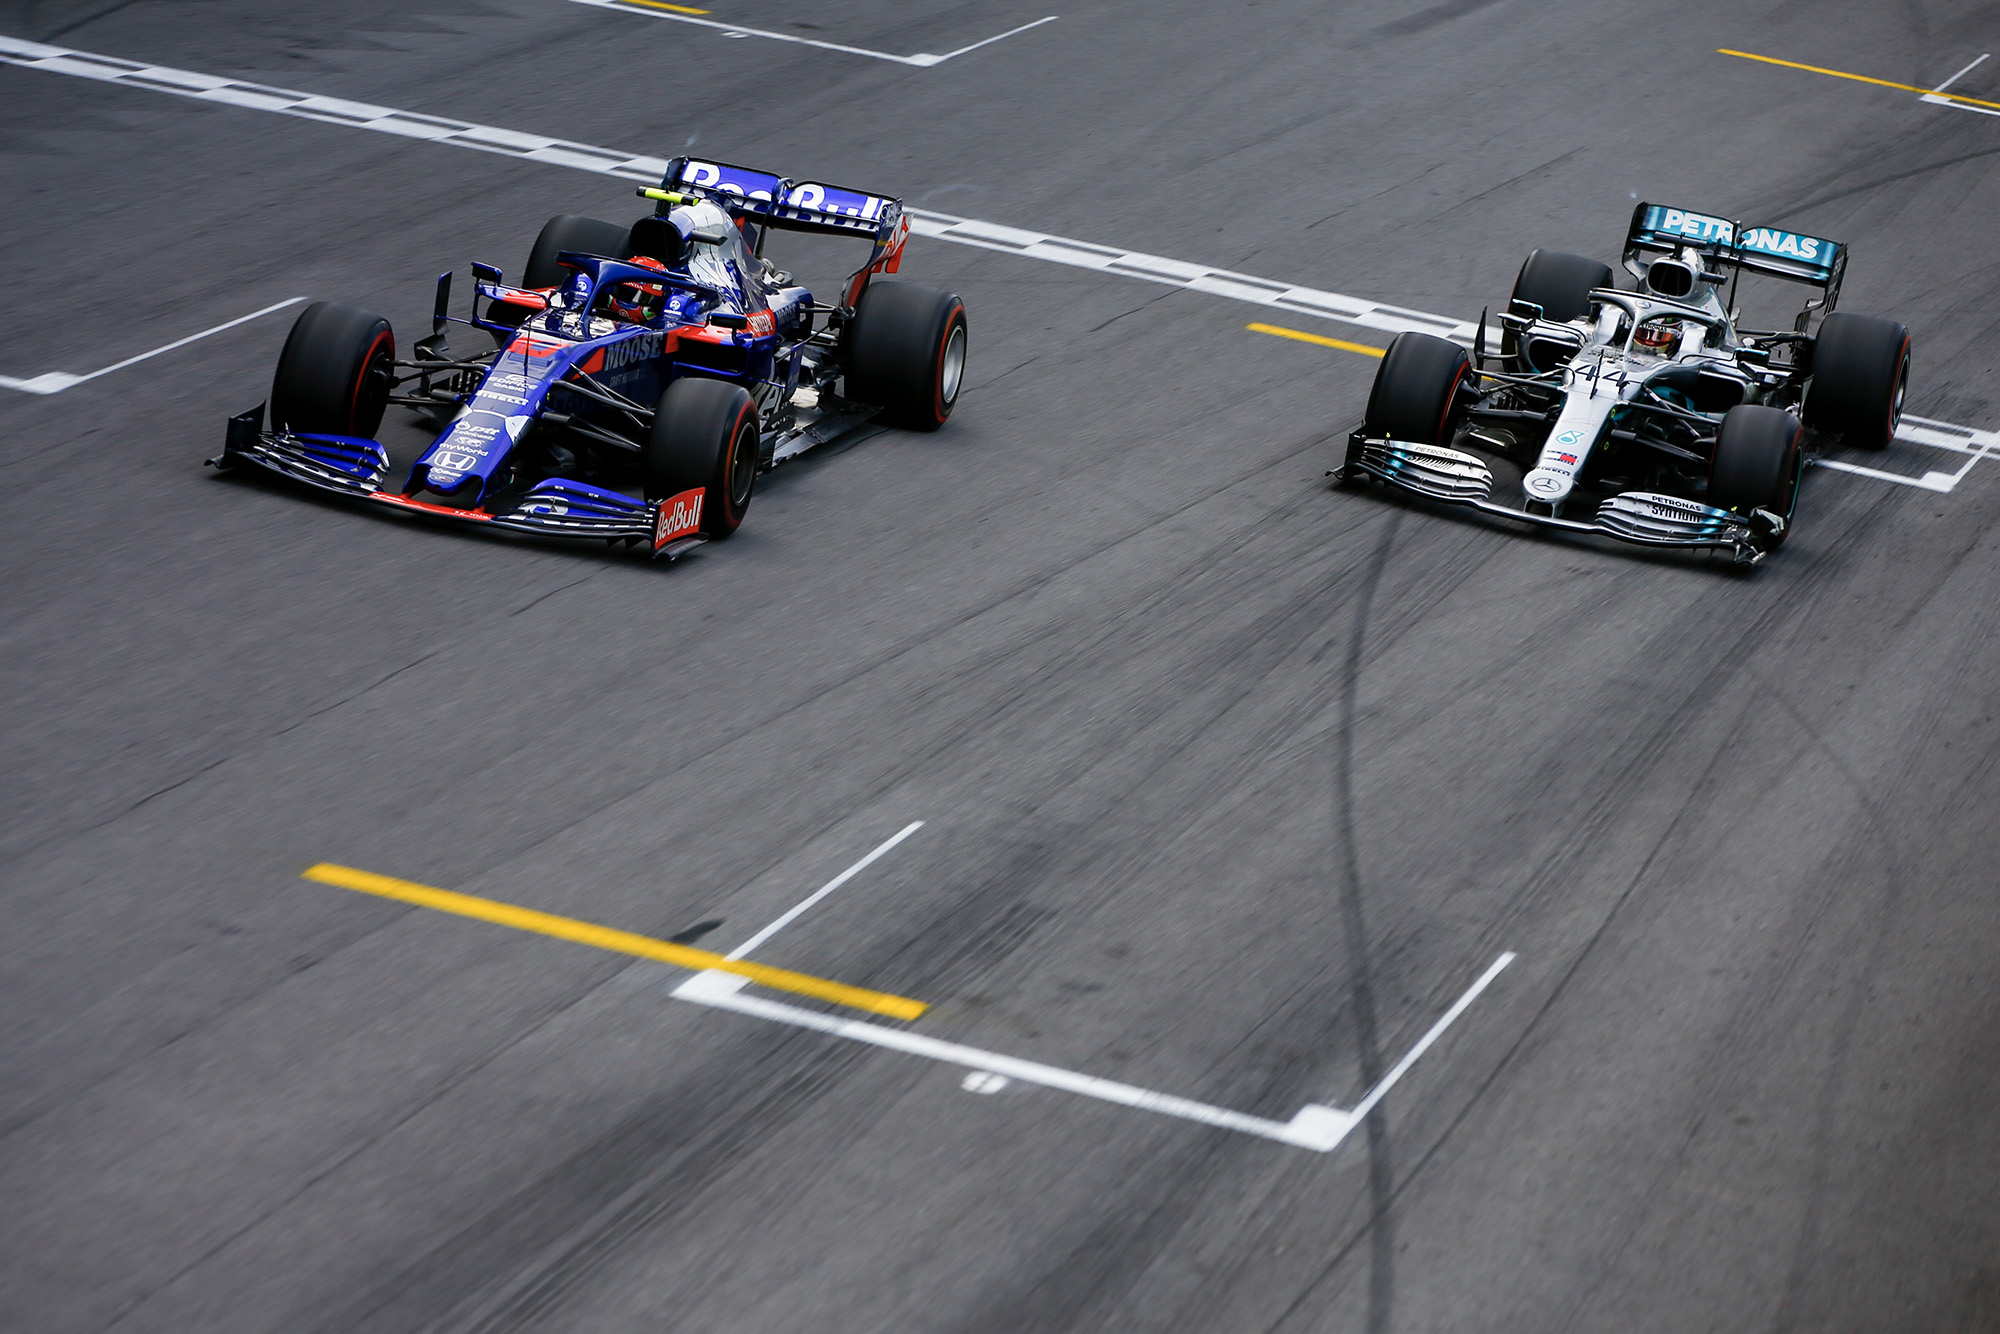 Gasly and Hamilton virtually side by side at the finish of the 2019 Brazilian Grand Prix